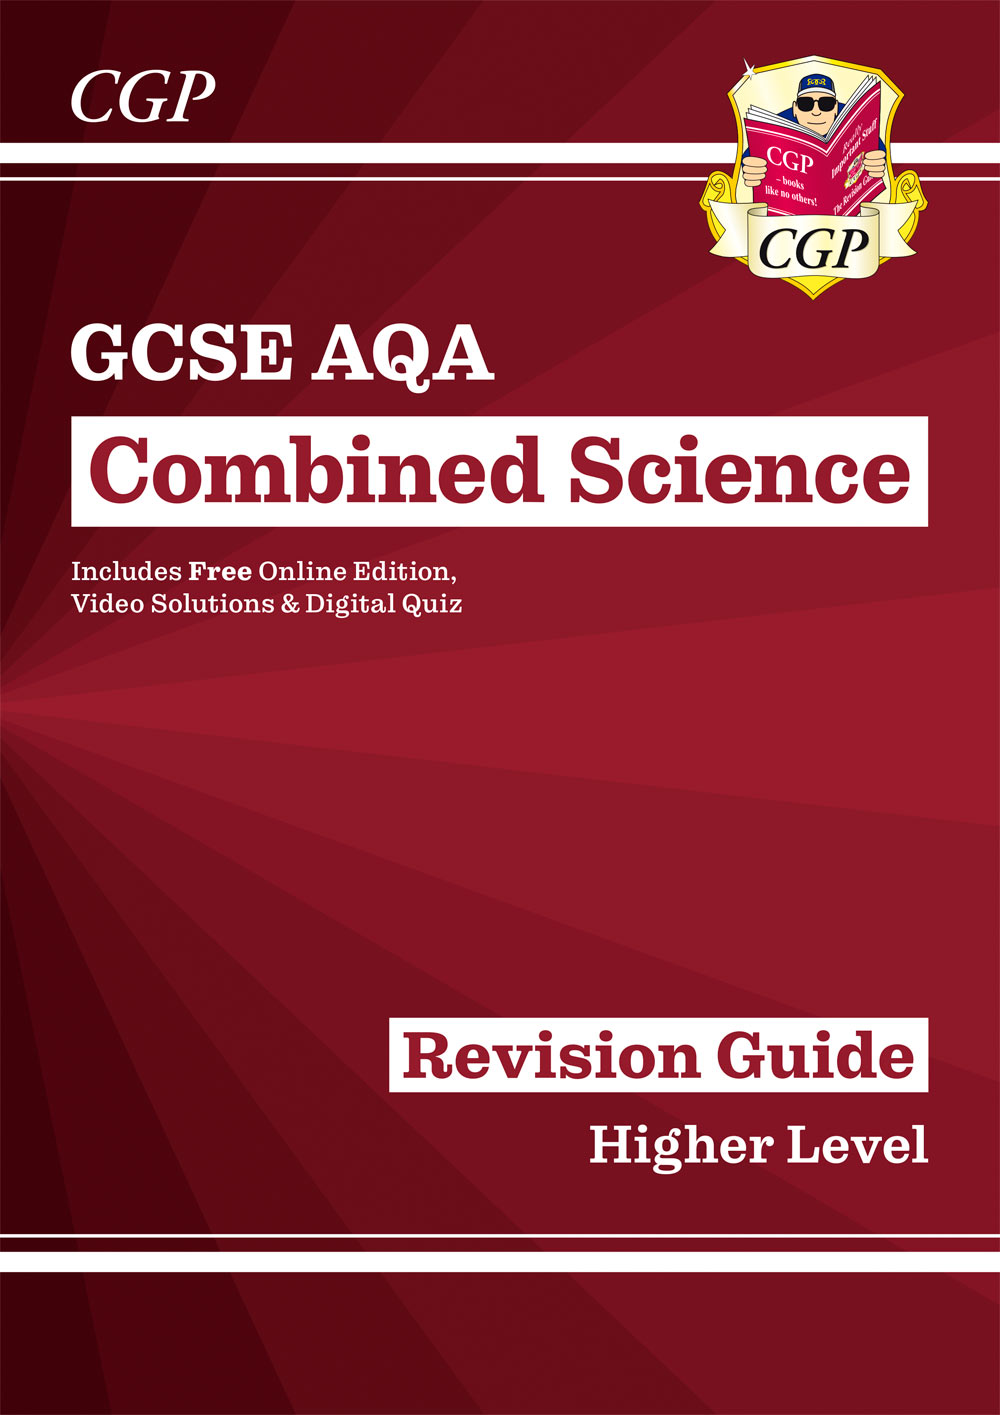 SAHR46 - New GCSE Combined Science AQA Revision Guide - Higher includes Online Edition, Videos & Qui